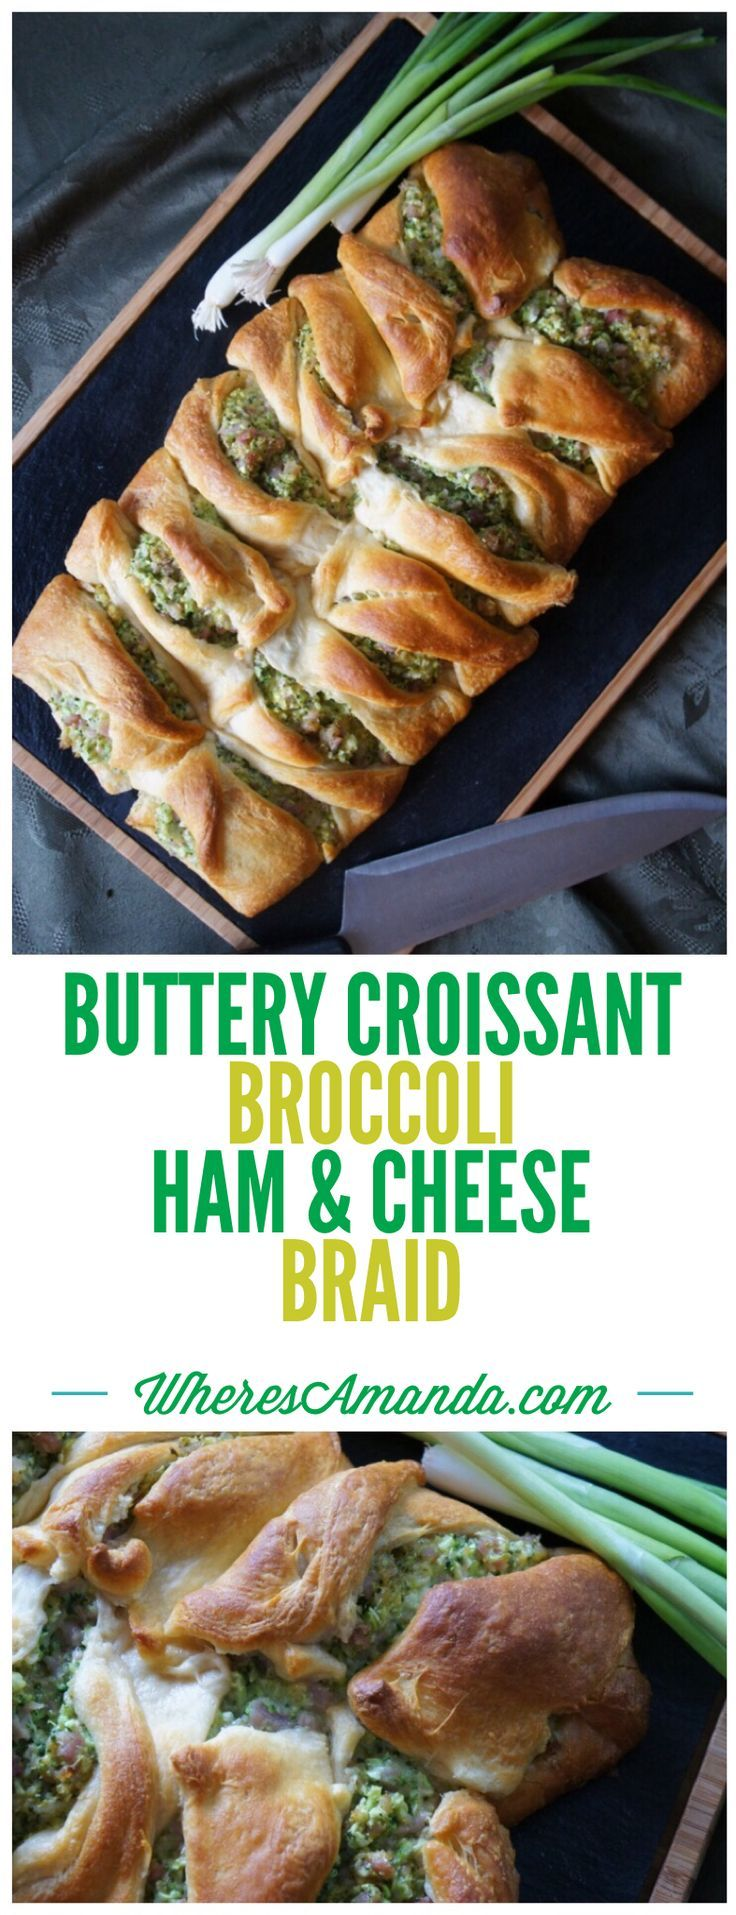 about Ham And Cheese Croissant on Pinterest | Cheese Croissant, Ham ...